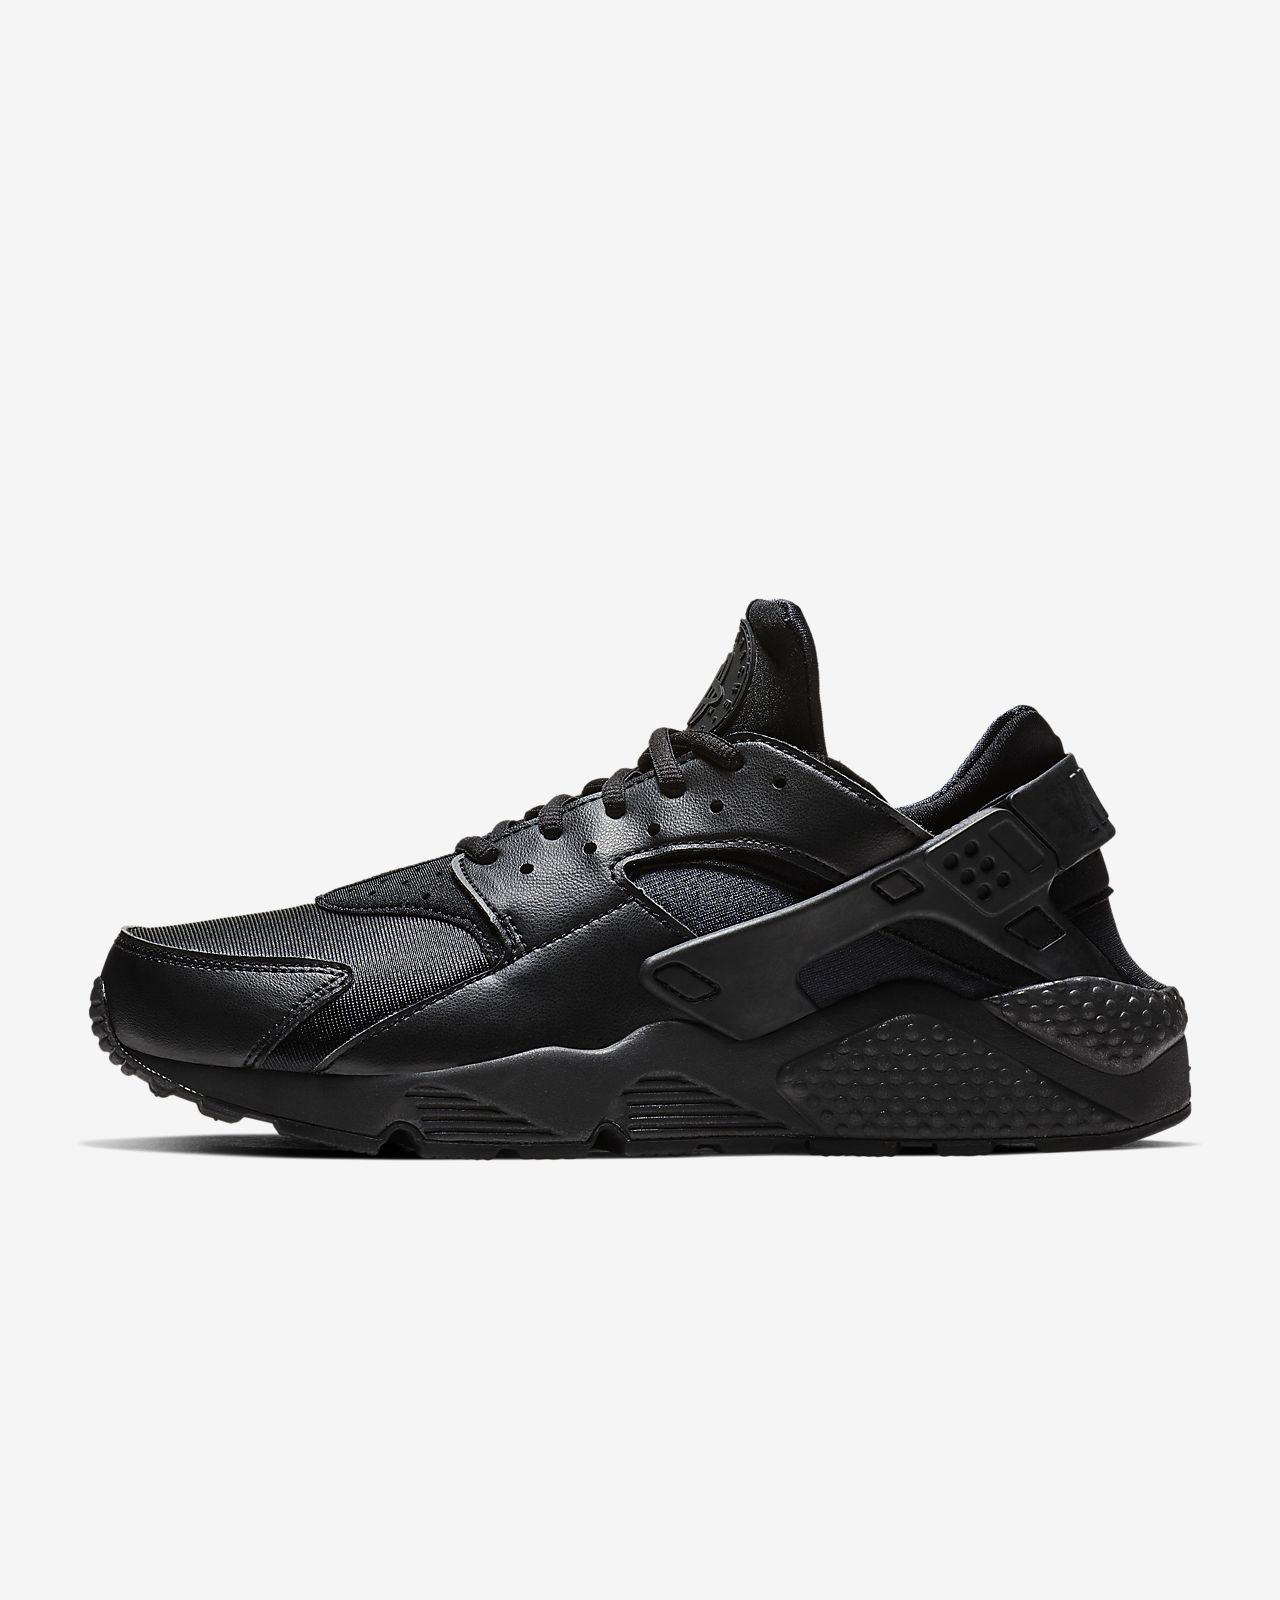 9d89841345cd Nike Air Huarache Women s Shoe. Nike.com